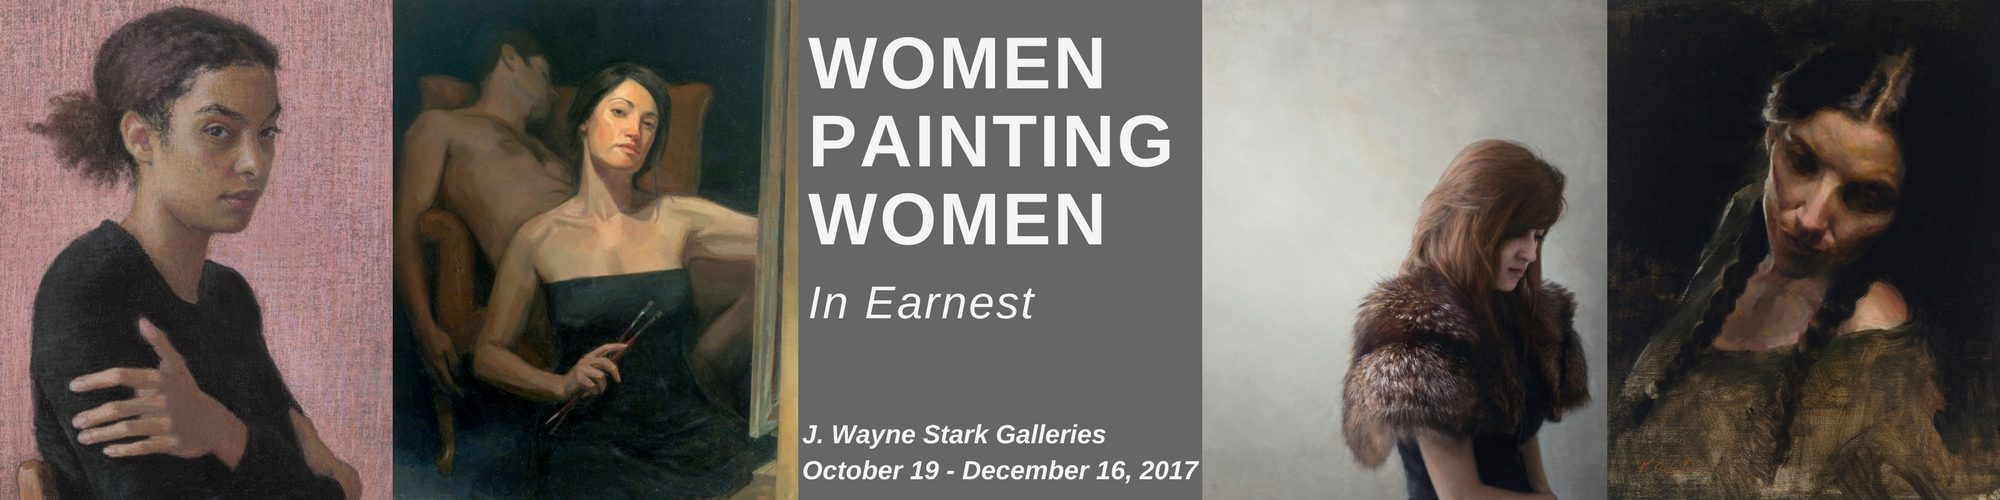 Women Painting Women: In Earnest will be on display in the J. Wayne Stark Galleries from October 19 through December 16, 2017.